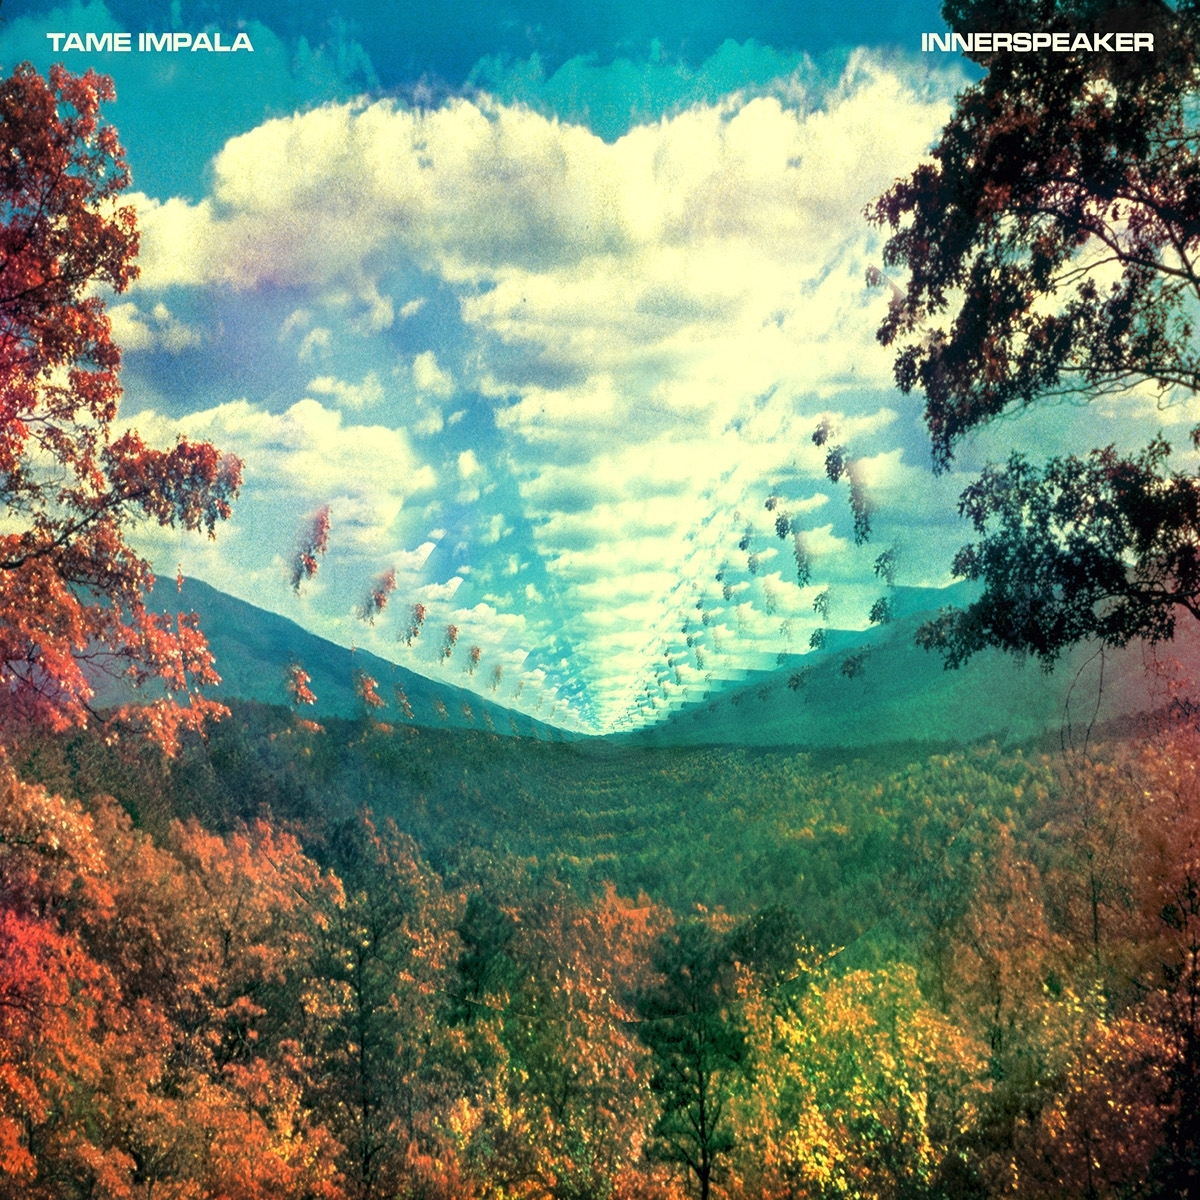 tame impala – innerspeaker on behance